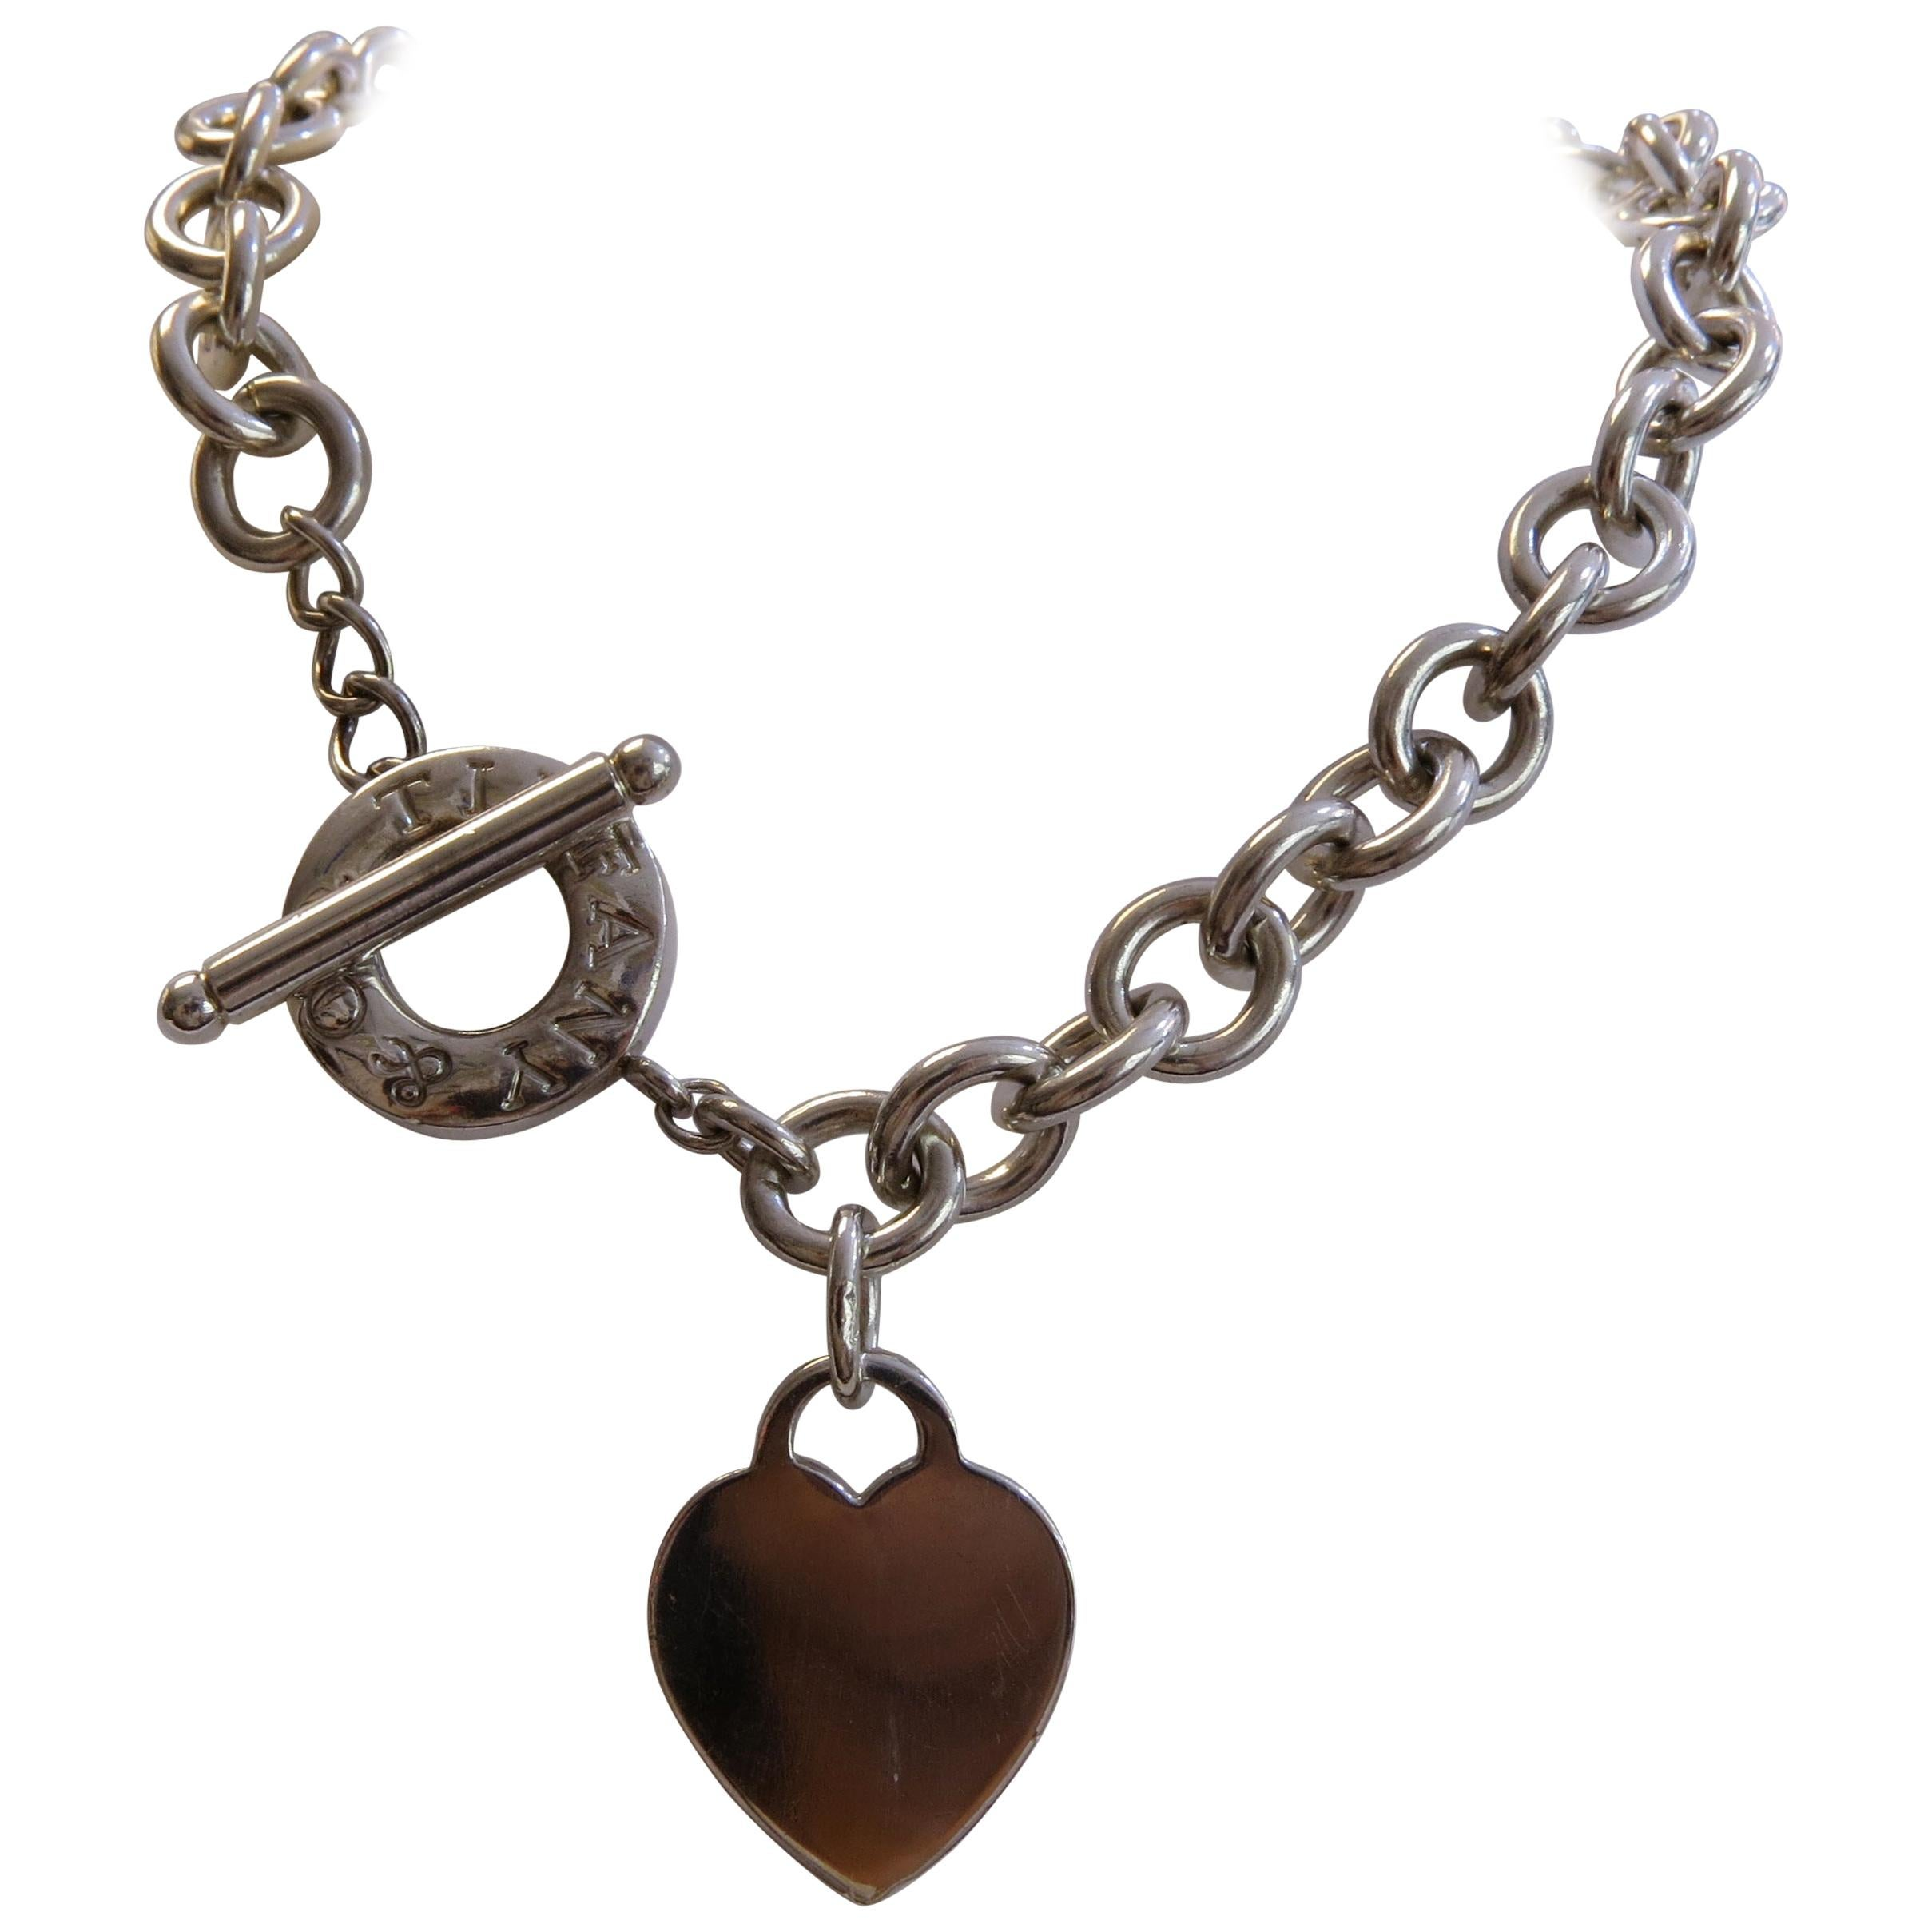 247c06a0a8702 Tiffany & Co. Link Heart Tag Necklace Shoker St. Silver Toggle Clasp